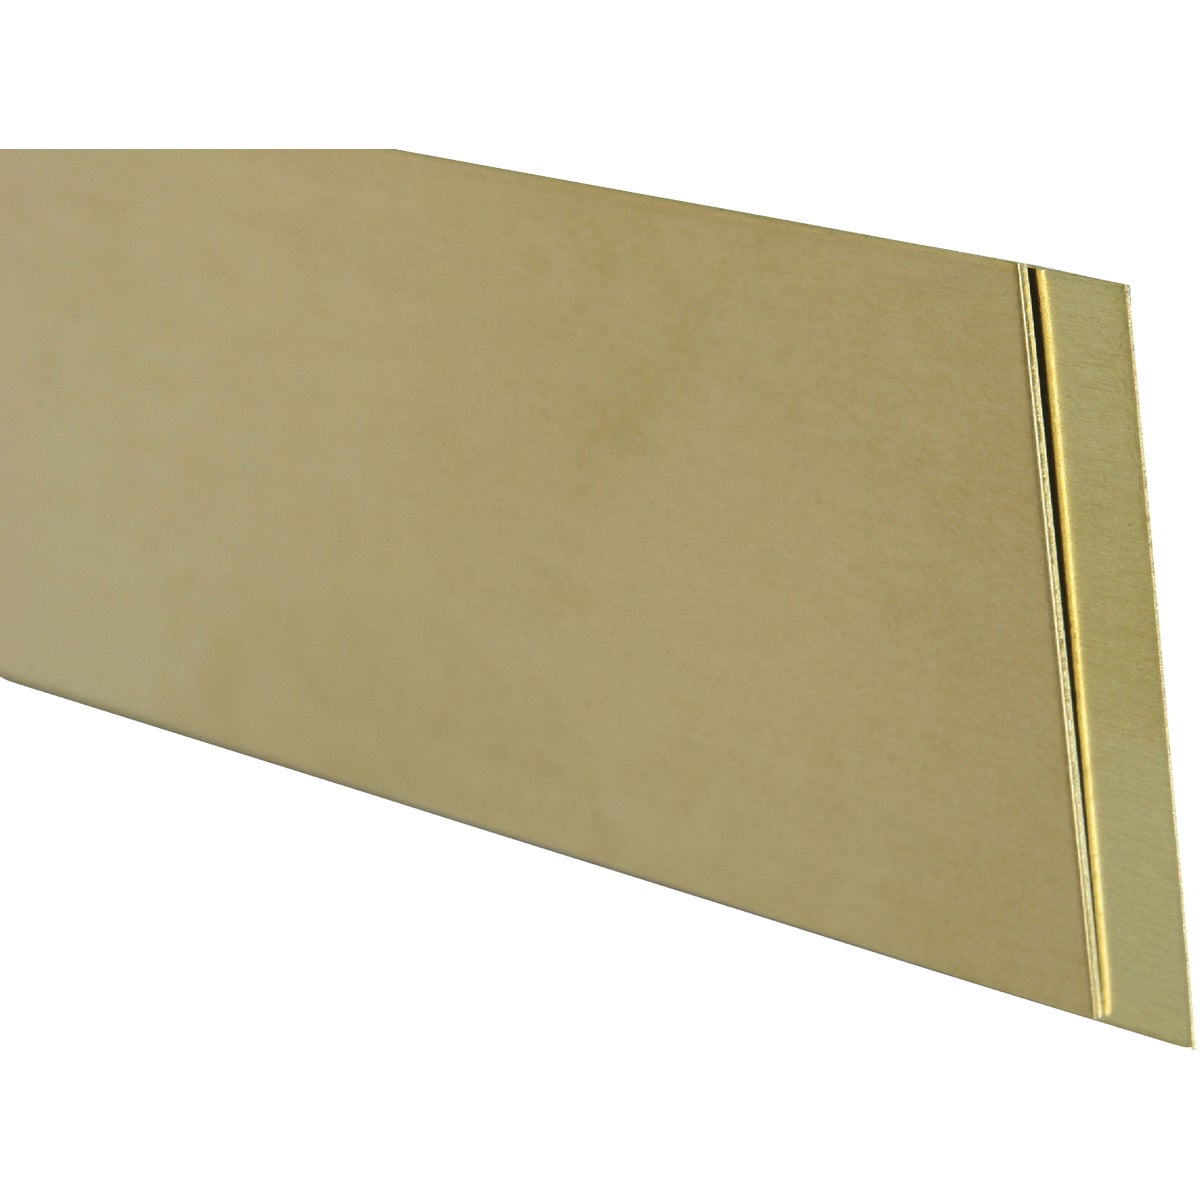 K & S Engineering .064X1/2X12 BRASS STRIP 246